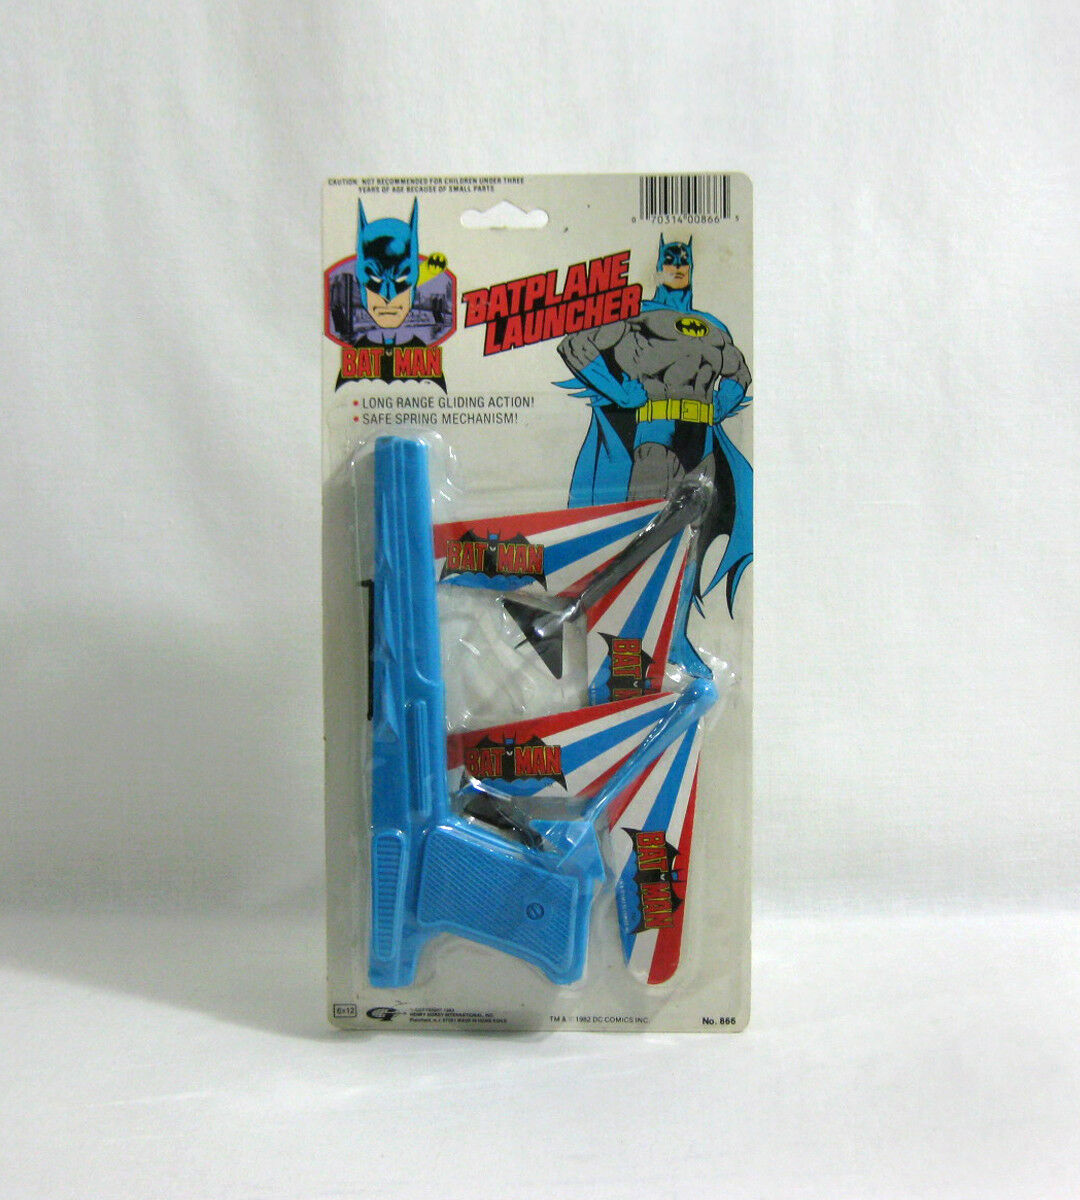 NEW 1989 Batman ✧ BATPLANE LAUNCHER ✧ Vintage DC Comics MOC